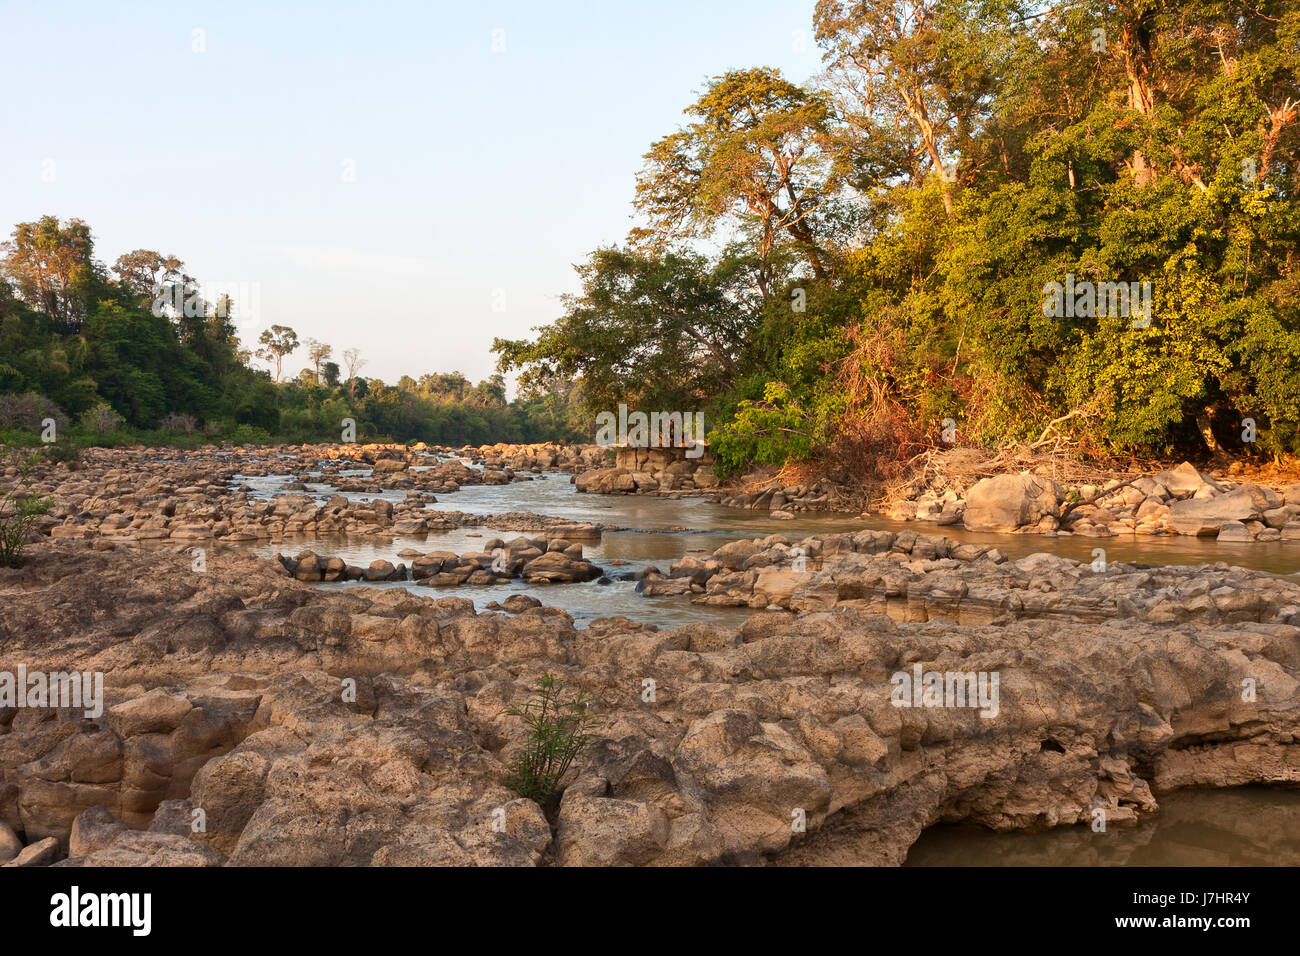 Ben Cu Rapids in Dong Nai River at sunset (dry season), Cat Tien National Park, Vietnam, Asia. - Stock Image